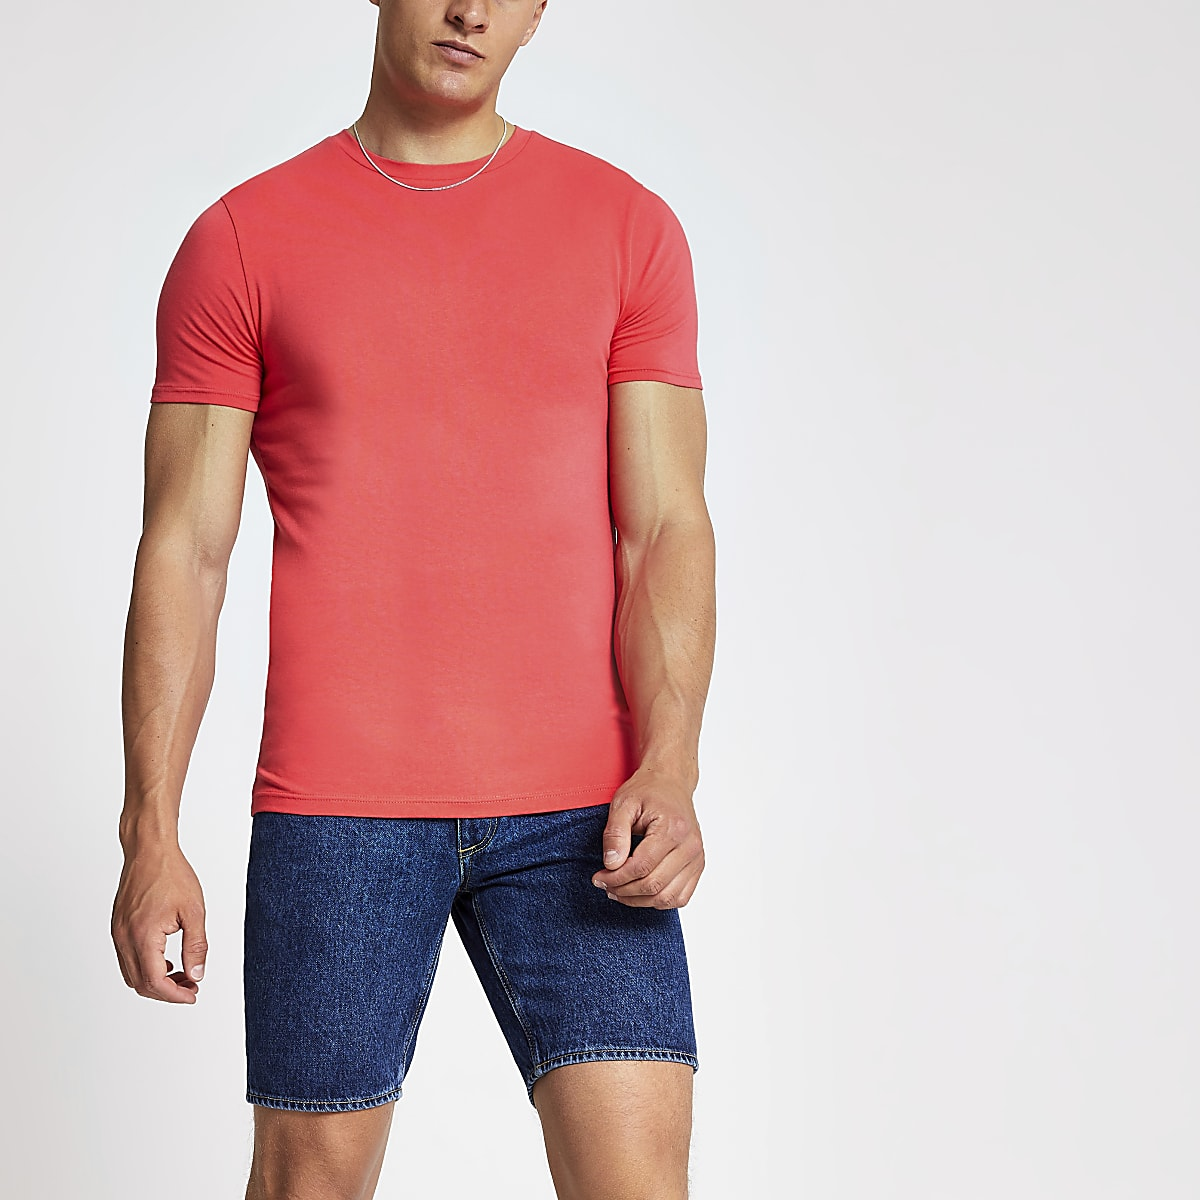 Coral muscle fit crew neck T-shirt